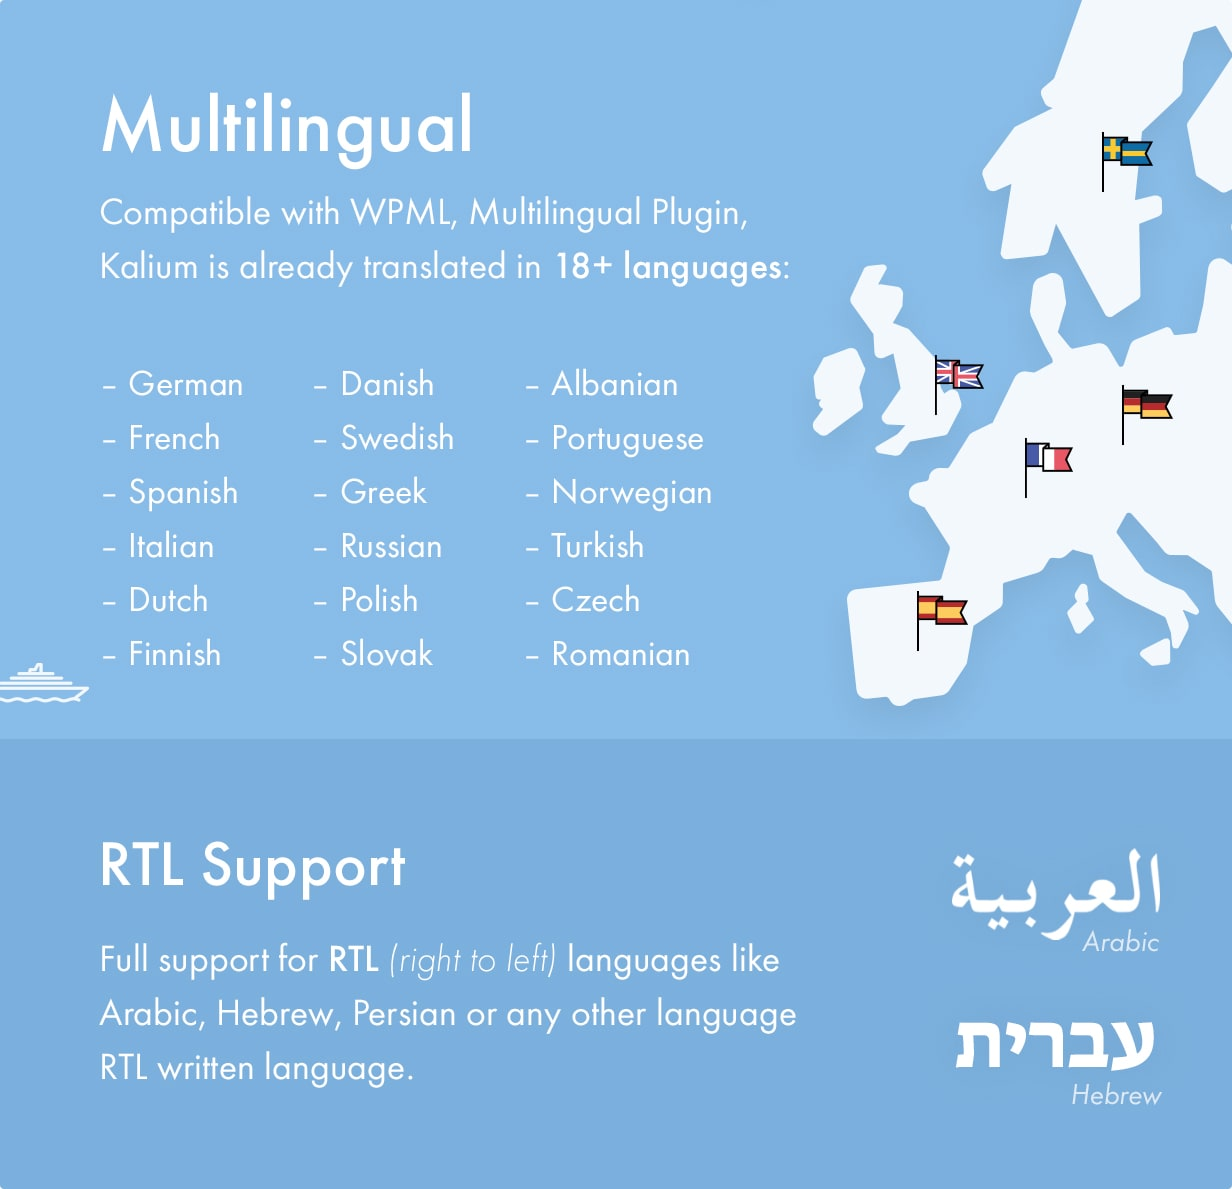 Kalium theme supports WPML for multilingual websites and RTL (right-to left) languages